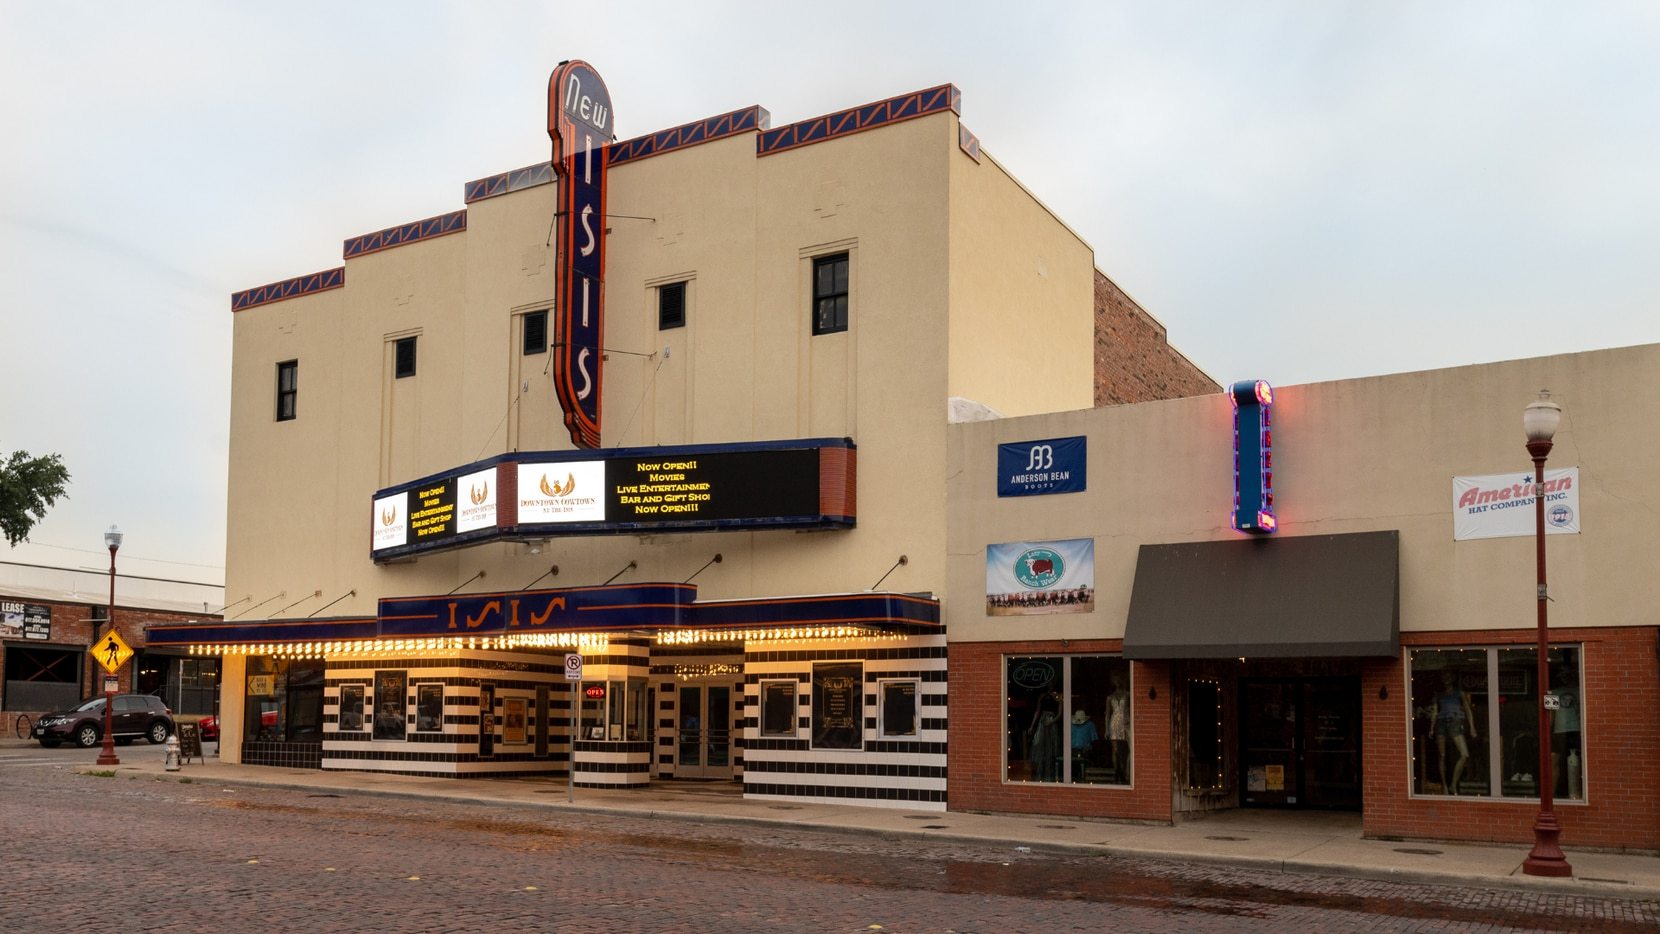 The original Isis Theatre debuted in 1914. Jeffrey Smith and his wife began their restoration process on the historic venue in 2016.